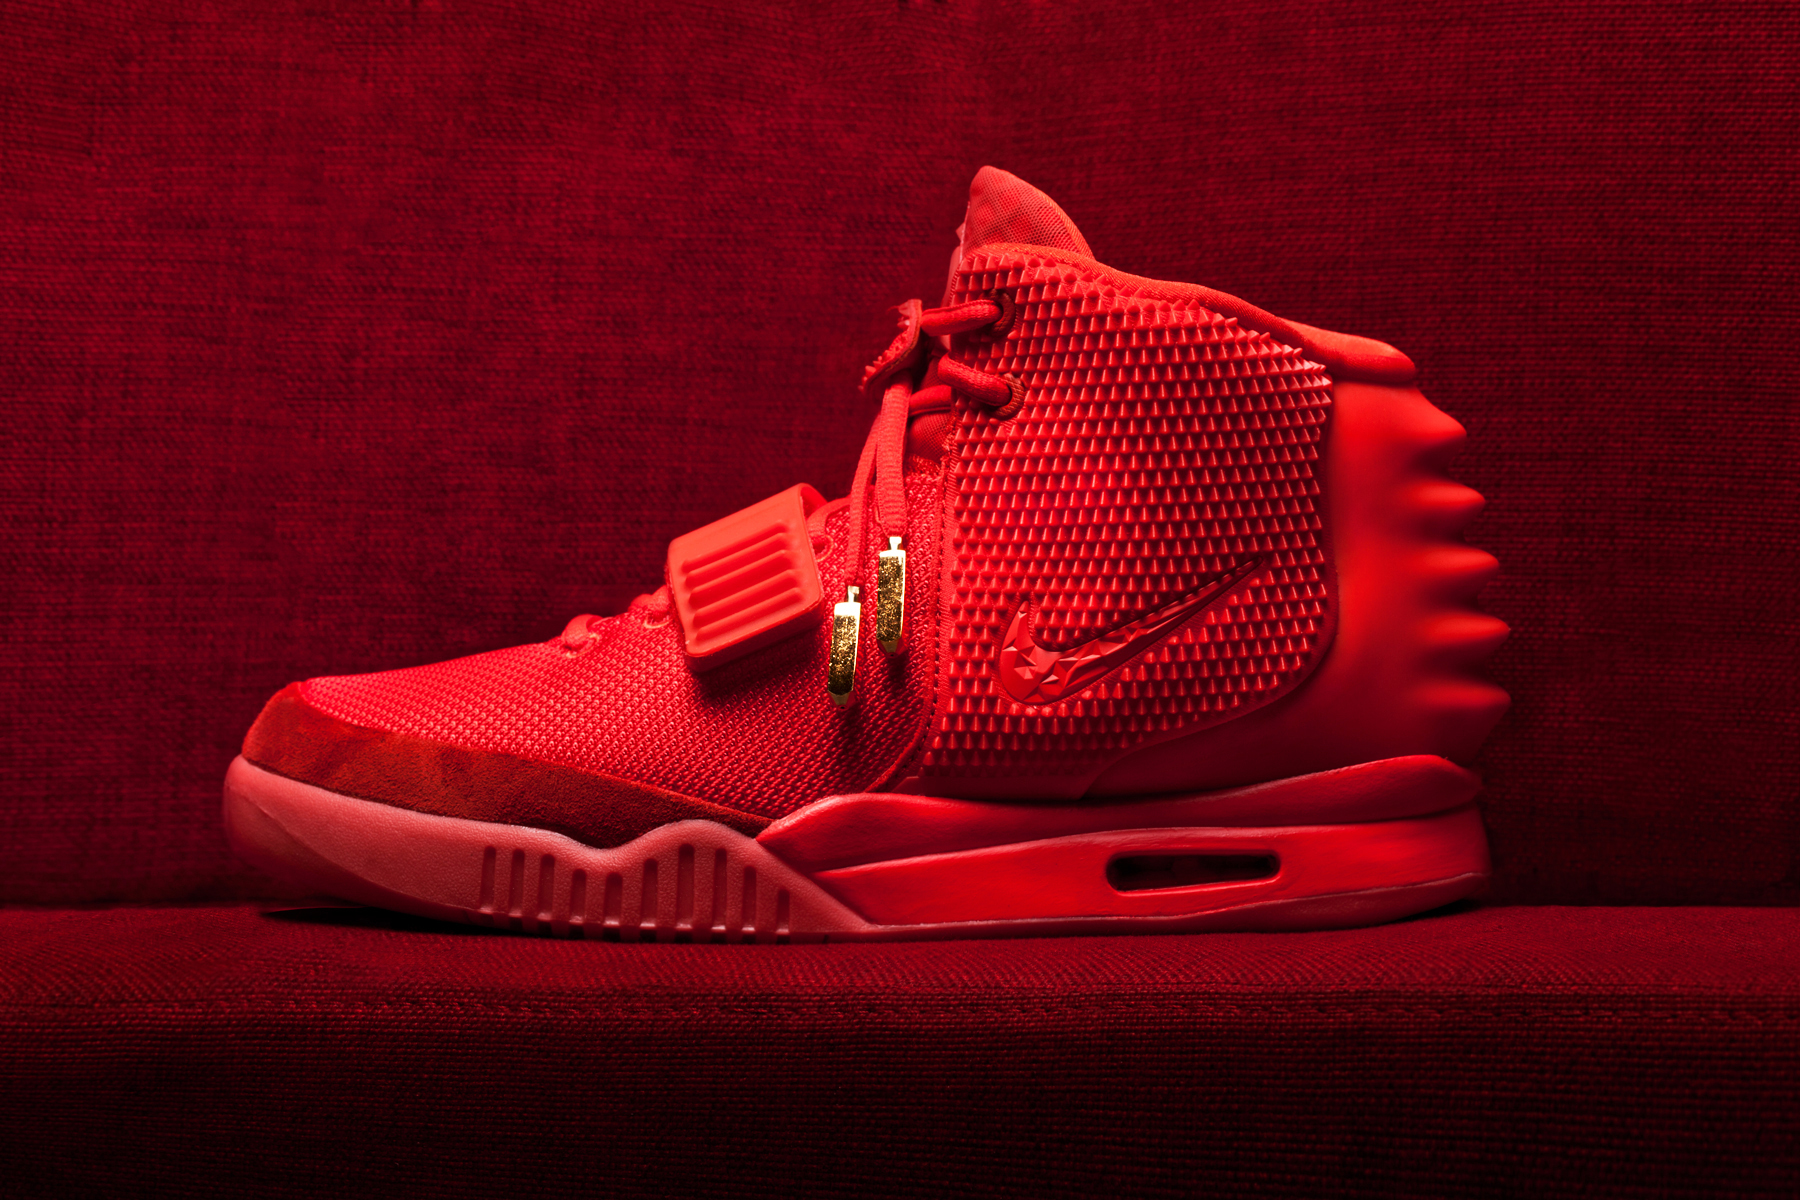 reselling the yeezy 2 speculating prices with ben baller and flight club